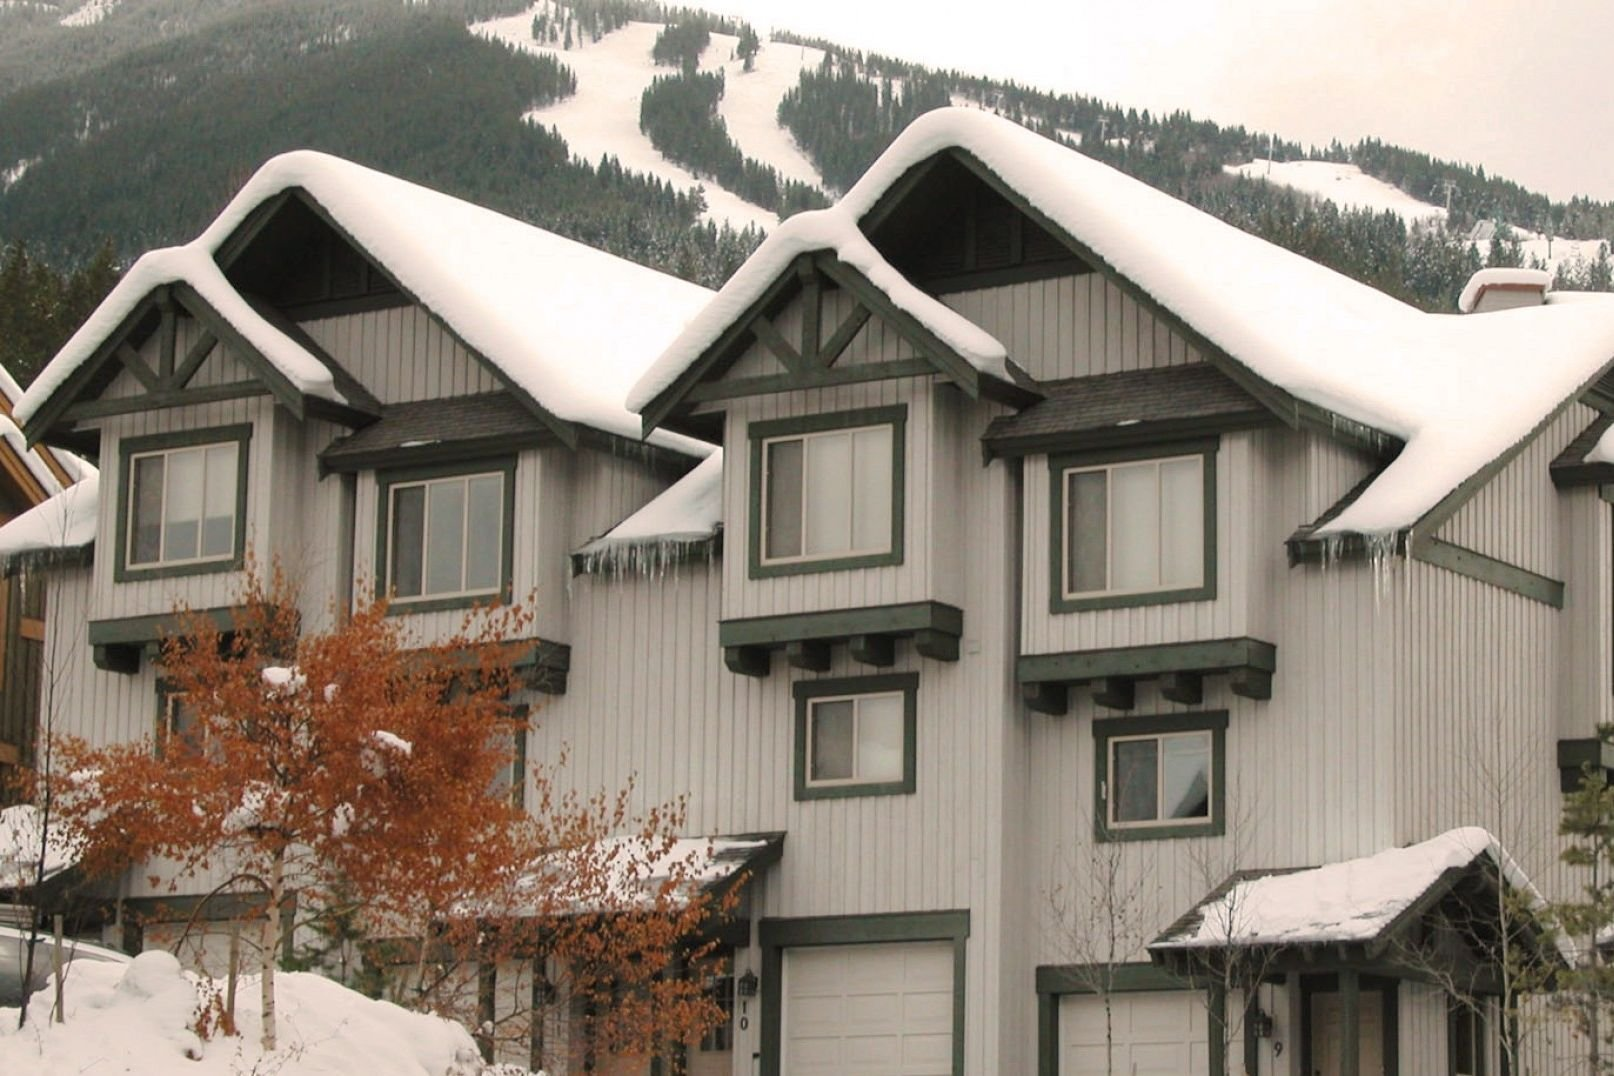 Panorama Mountain Village - harthstone townhomes exterior.jpg